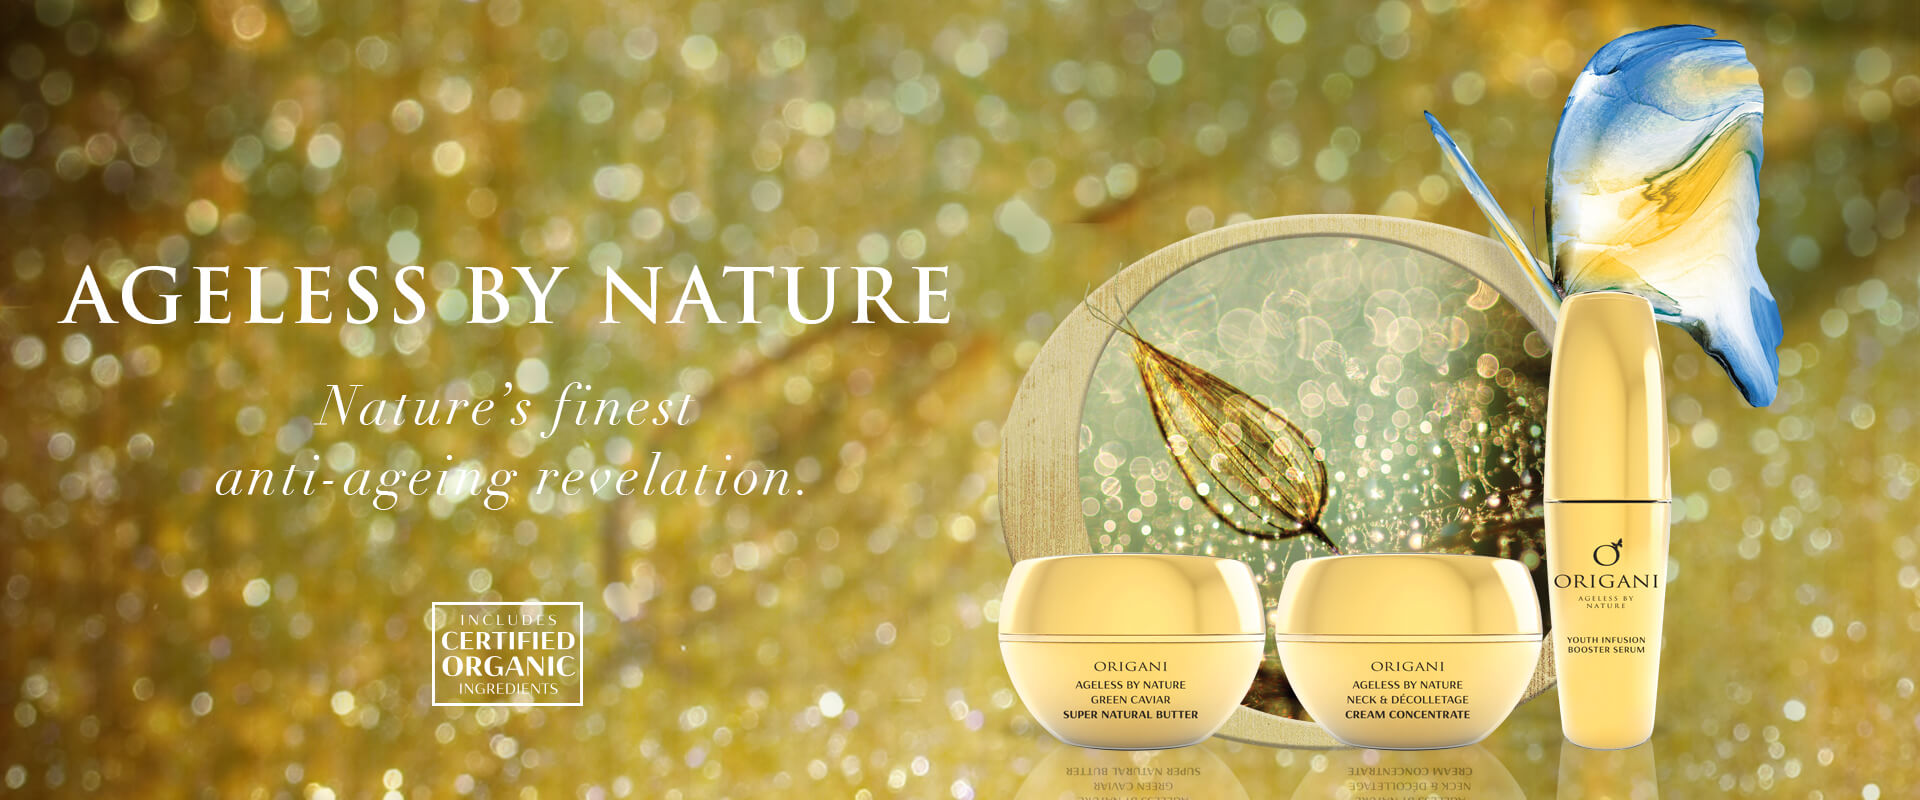 origani-ageless-by-nature-category-banner